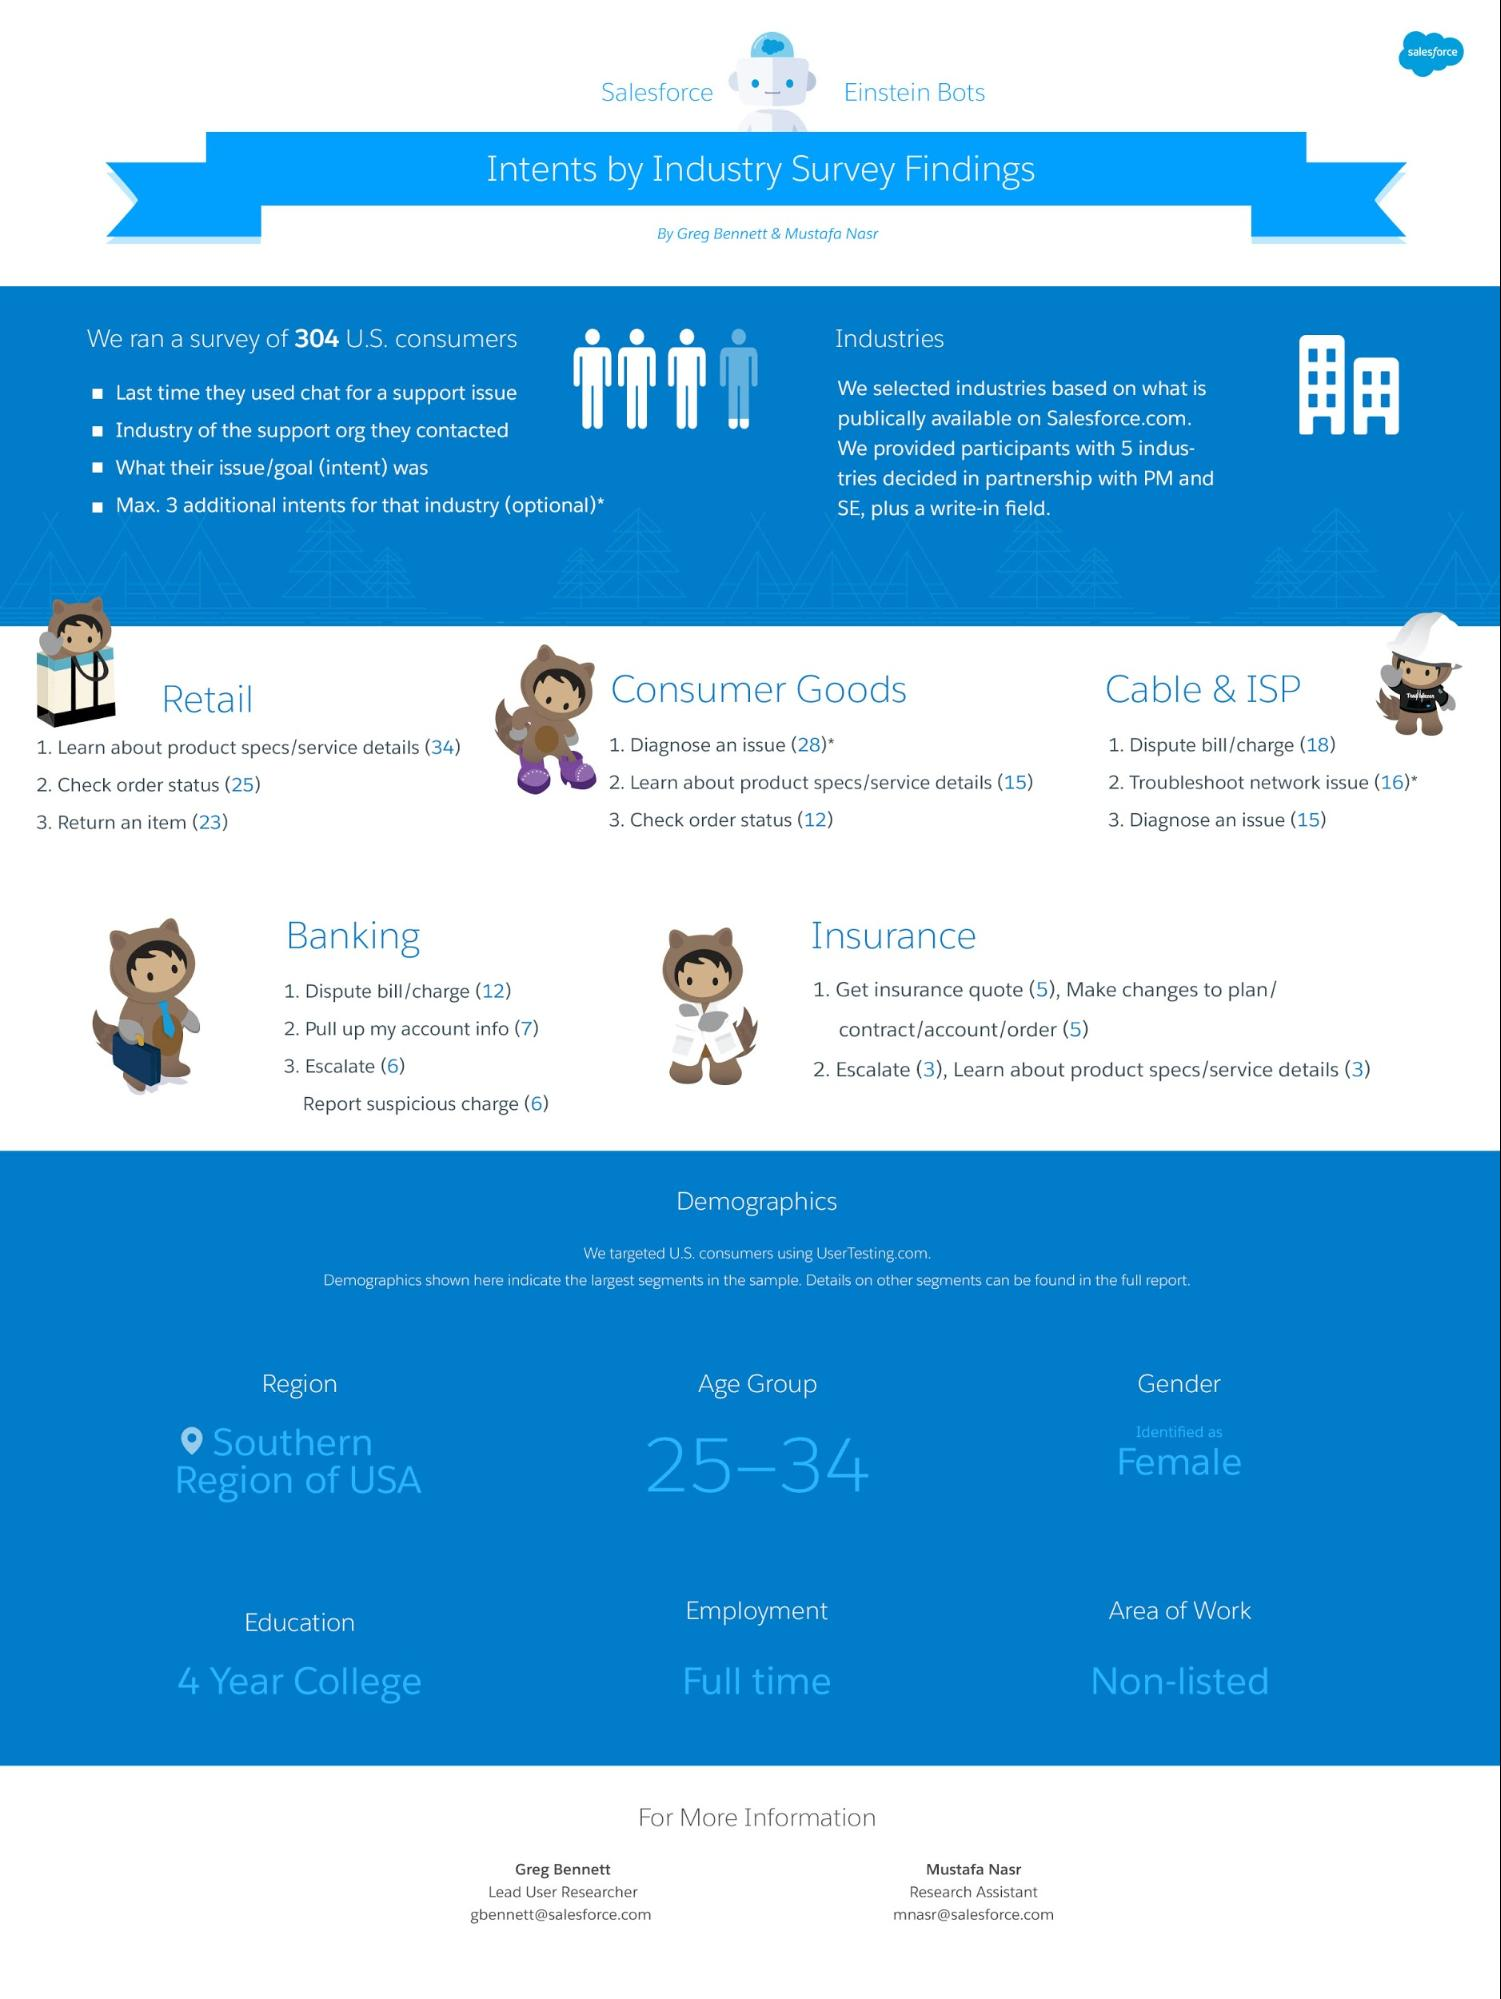 Einstein Bots Intents by Industry Infographic